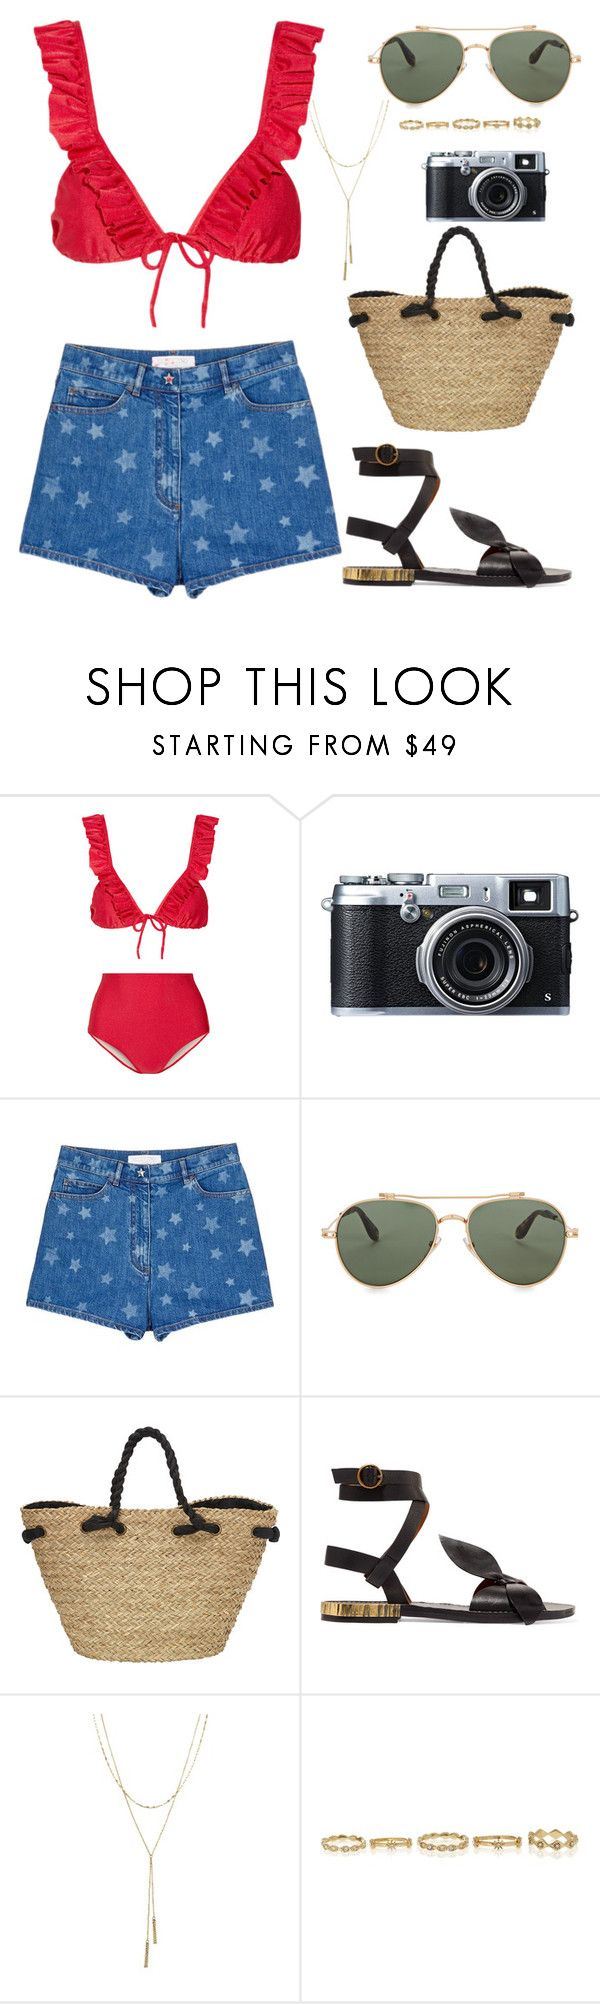 """Untitled #225"" by elb1406 on Polyvore featuring ADRIANA DEGREAS, Fujifilm, Valentino, Givenchy, Sun N' Sand, Chloé and Bloomingdale's"